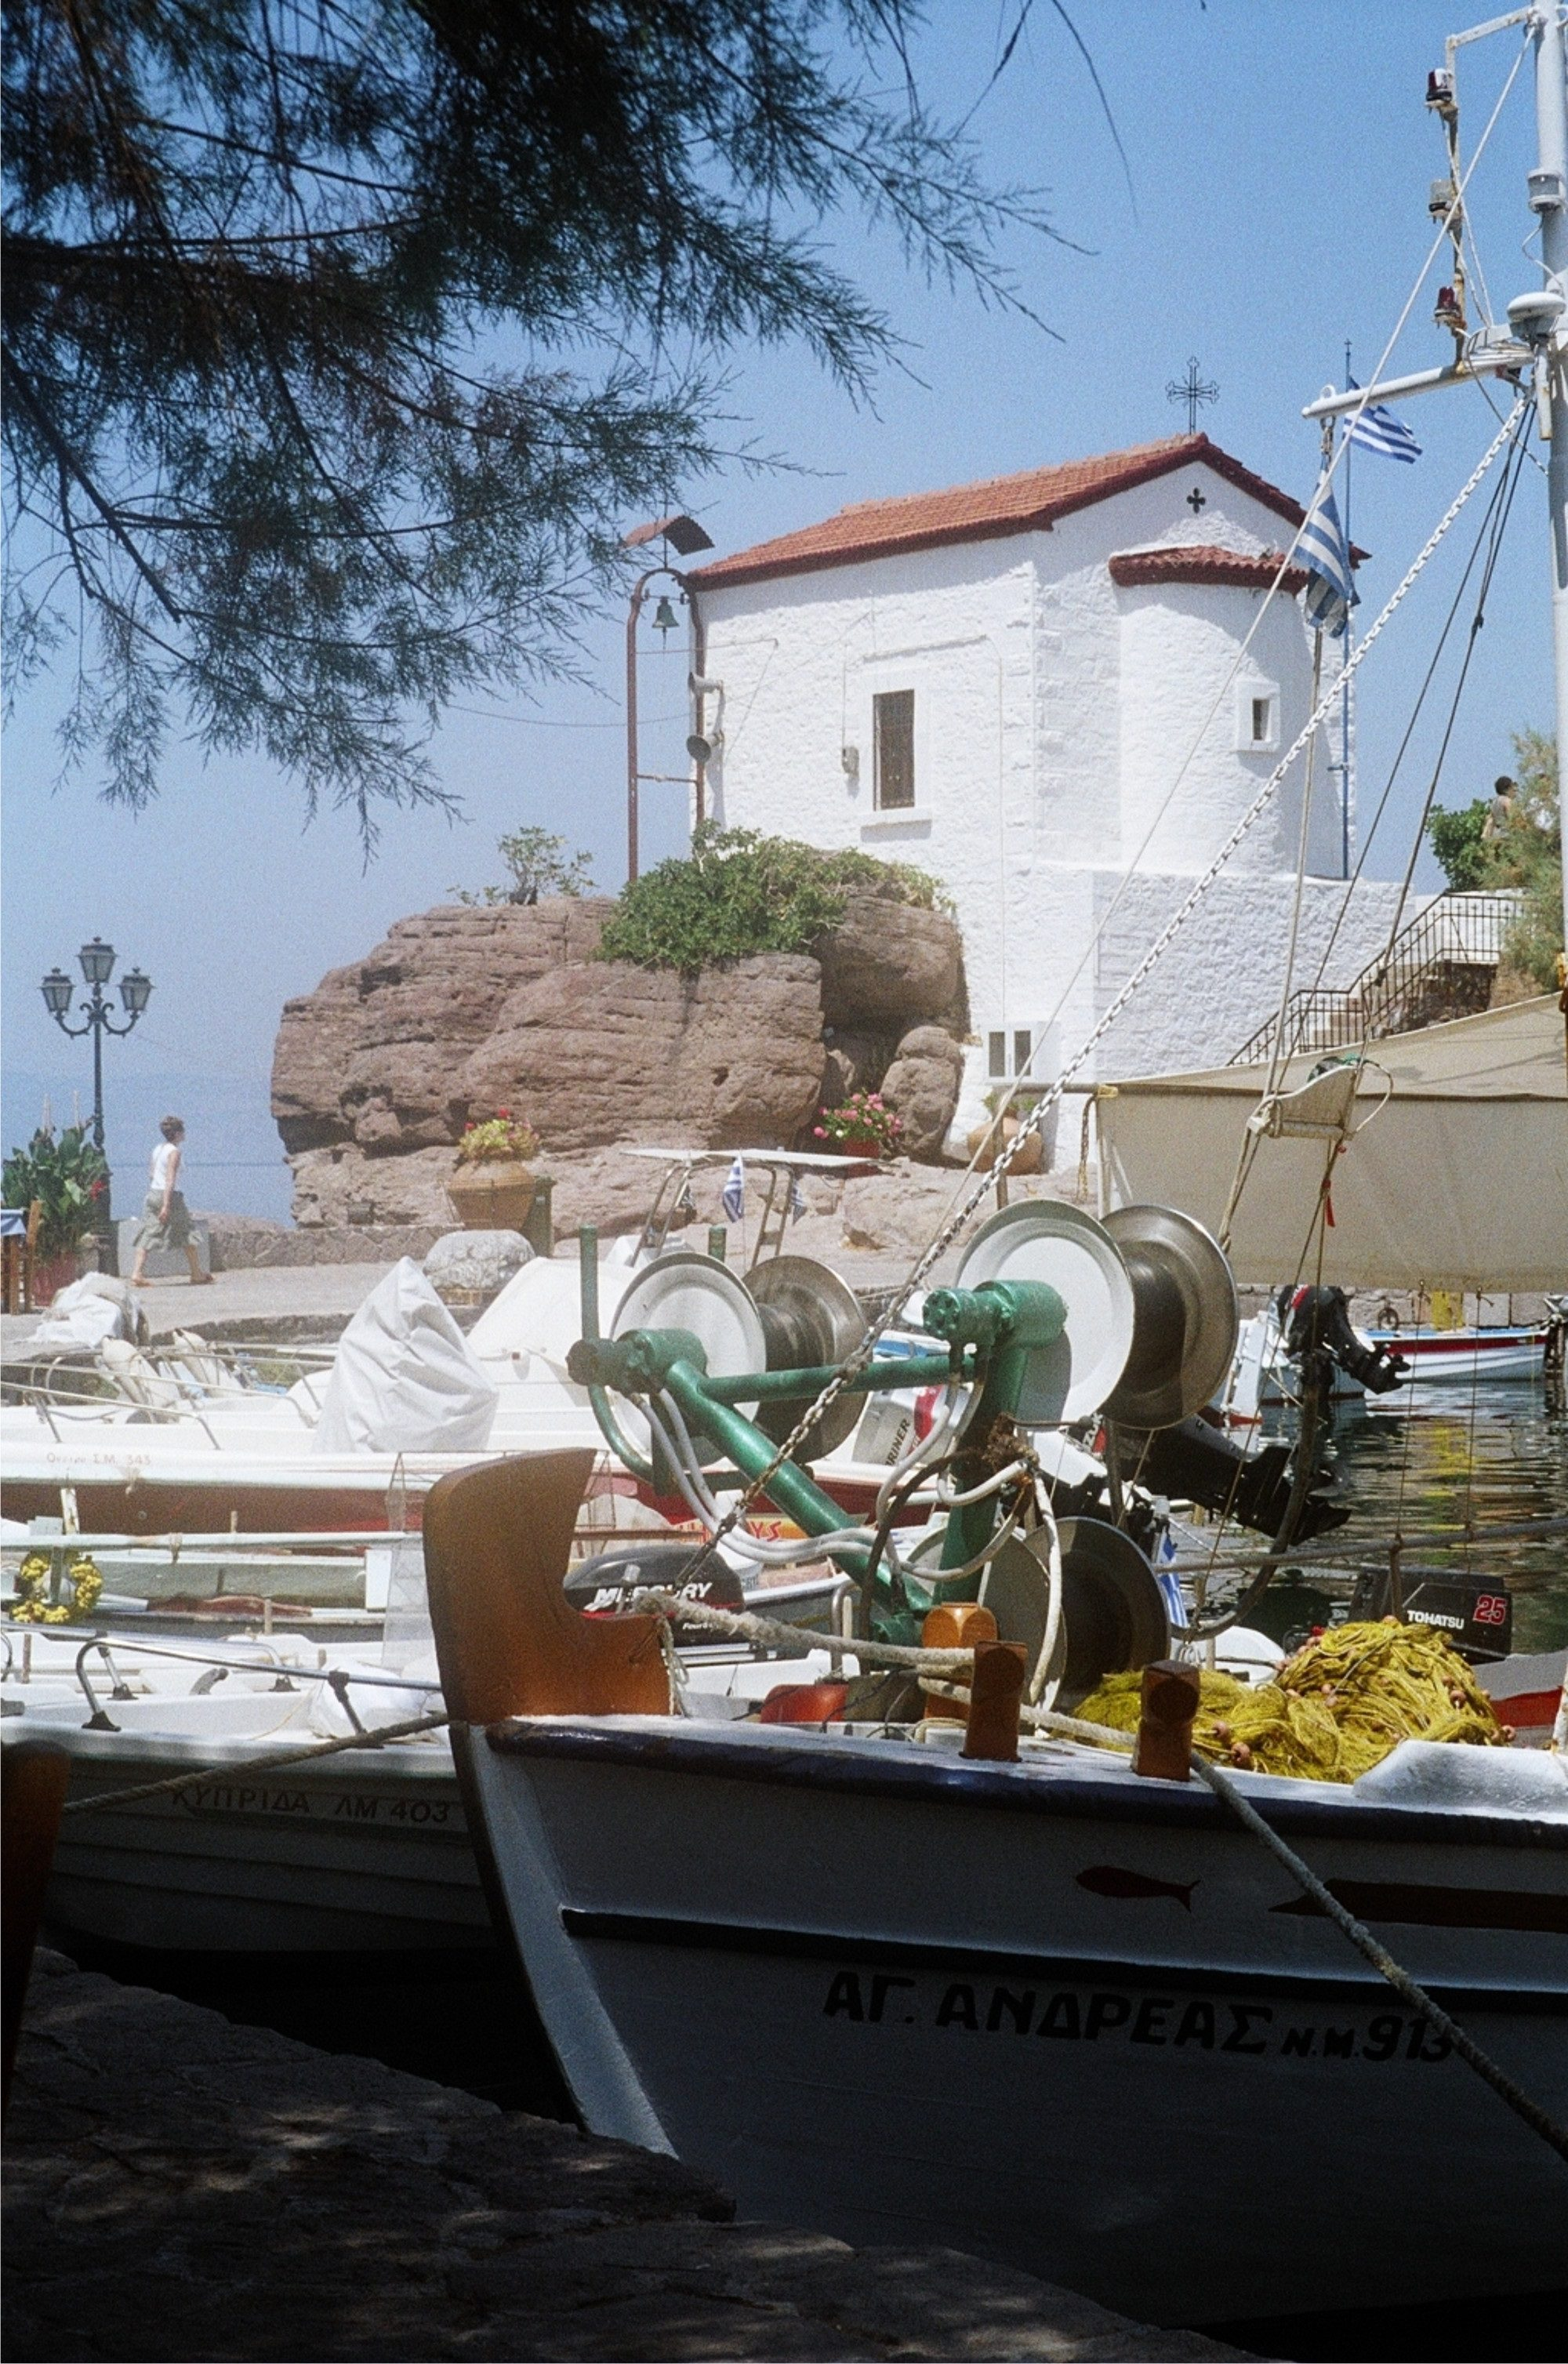 A scene from the beautiful Greek island of Lesvos